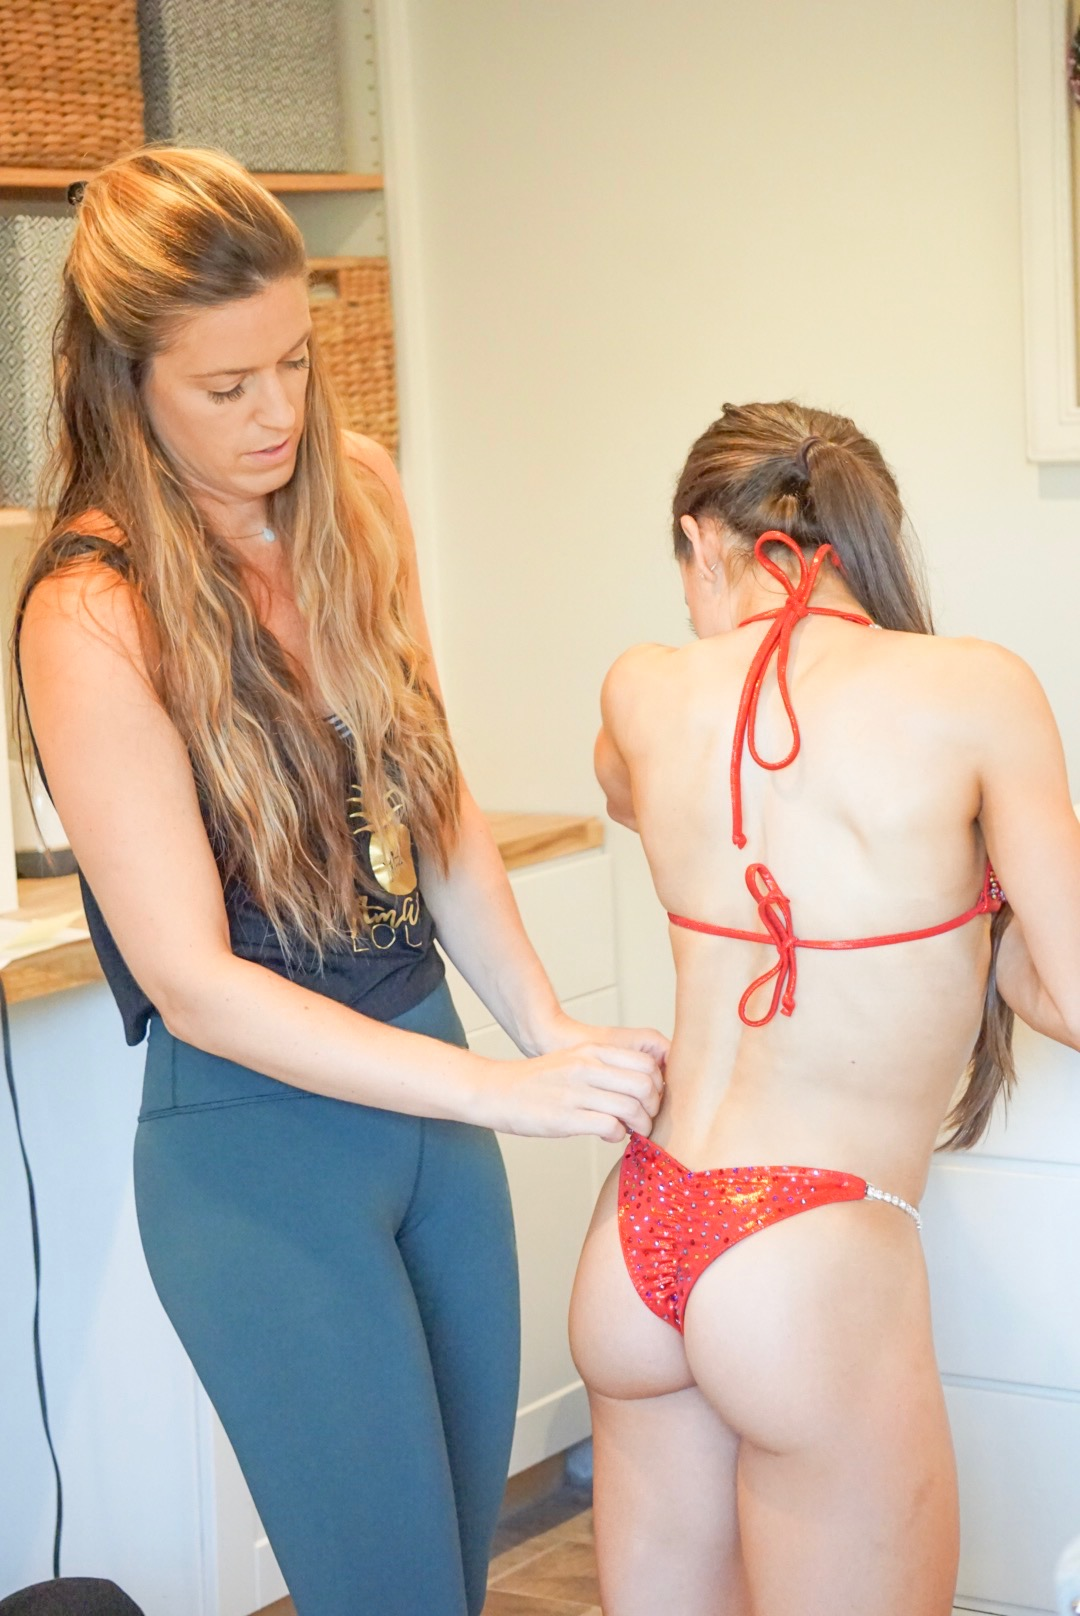 """Pro Level Suit Security - """"It's life changing! I even used it to create some boobage. 100% never going back to the old ways of glue.' - Shayla, Glute Tape Client"""